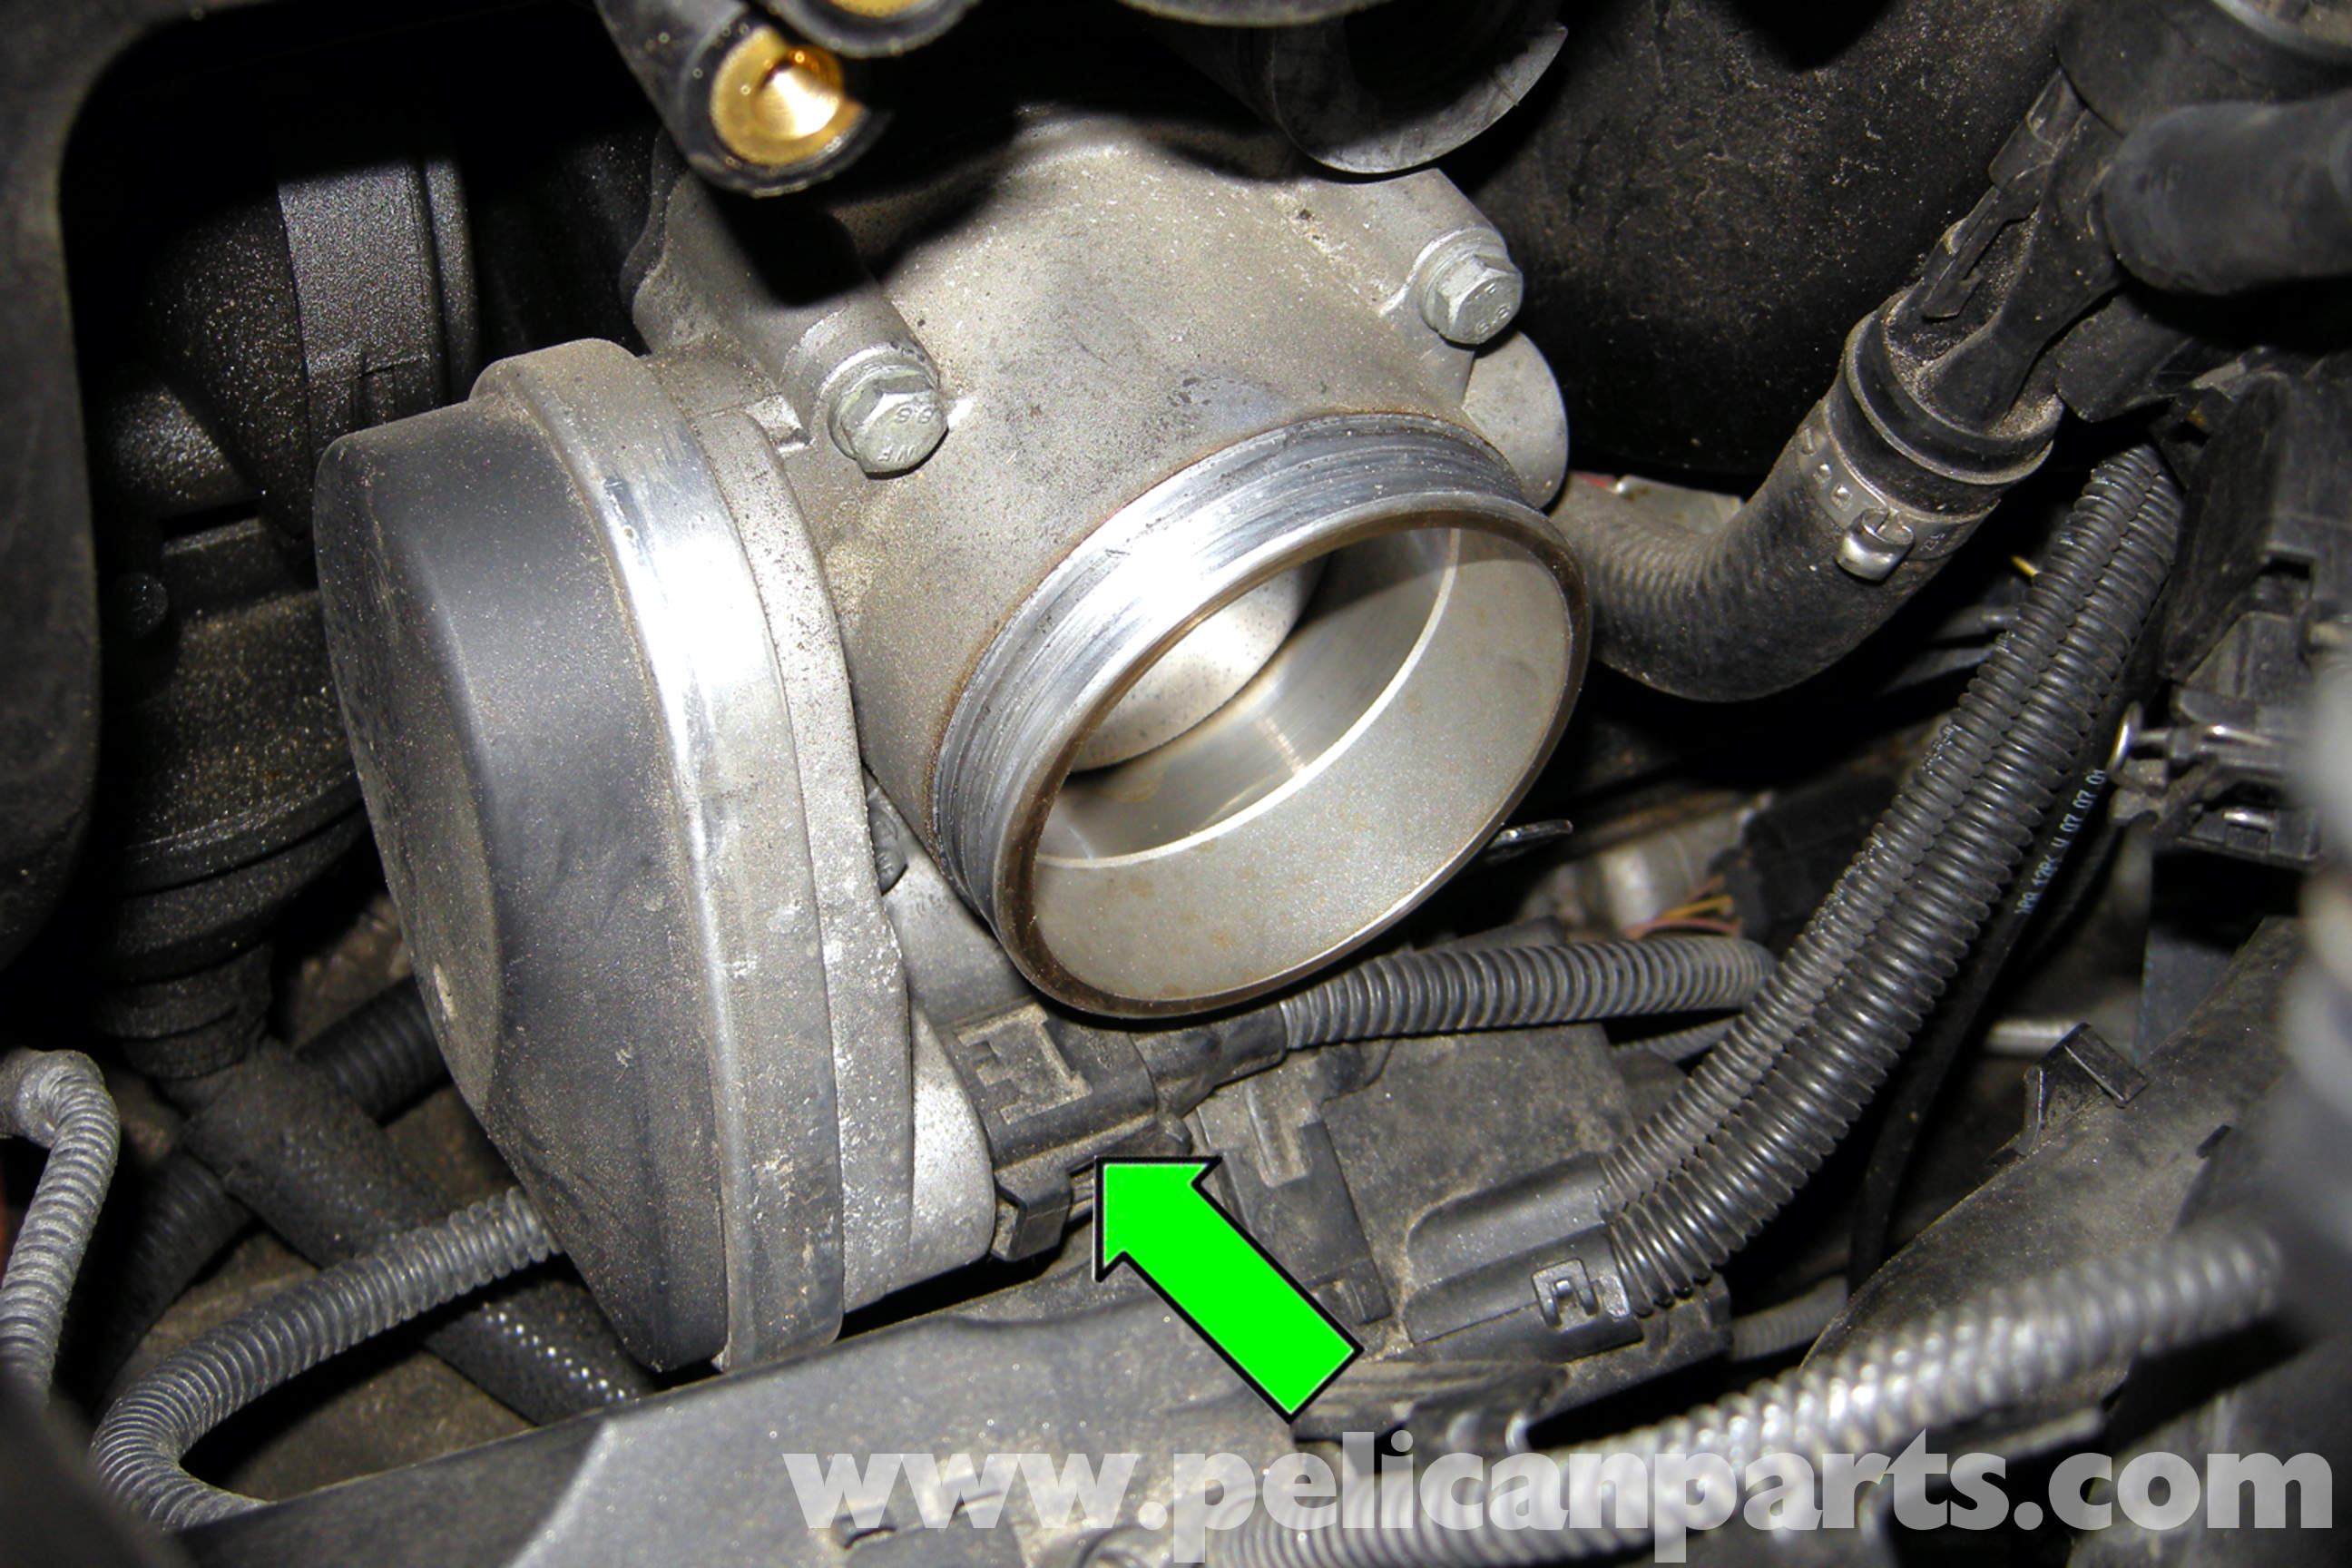 Crankshaft Position Sensor Location furthermore Bmw M50 Manifold also 101 Projects 12 Intake Manifold besides Fuse Box Diagram 2000 Bmw 323i Wiring Diagrams Instruction 325i additionally 20 FUEL Throttle Housing Replacement. on 2000 bmw 323i engine diagram